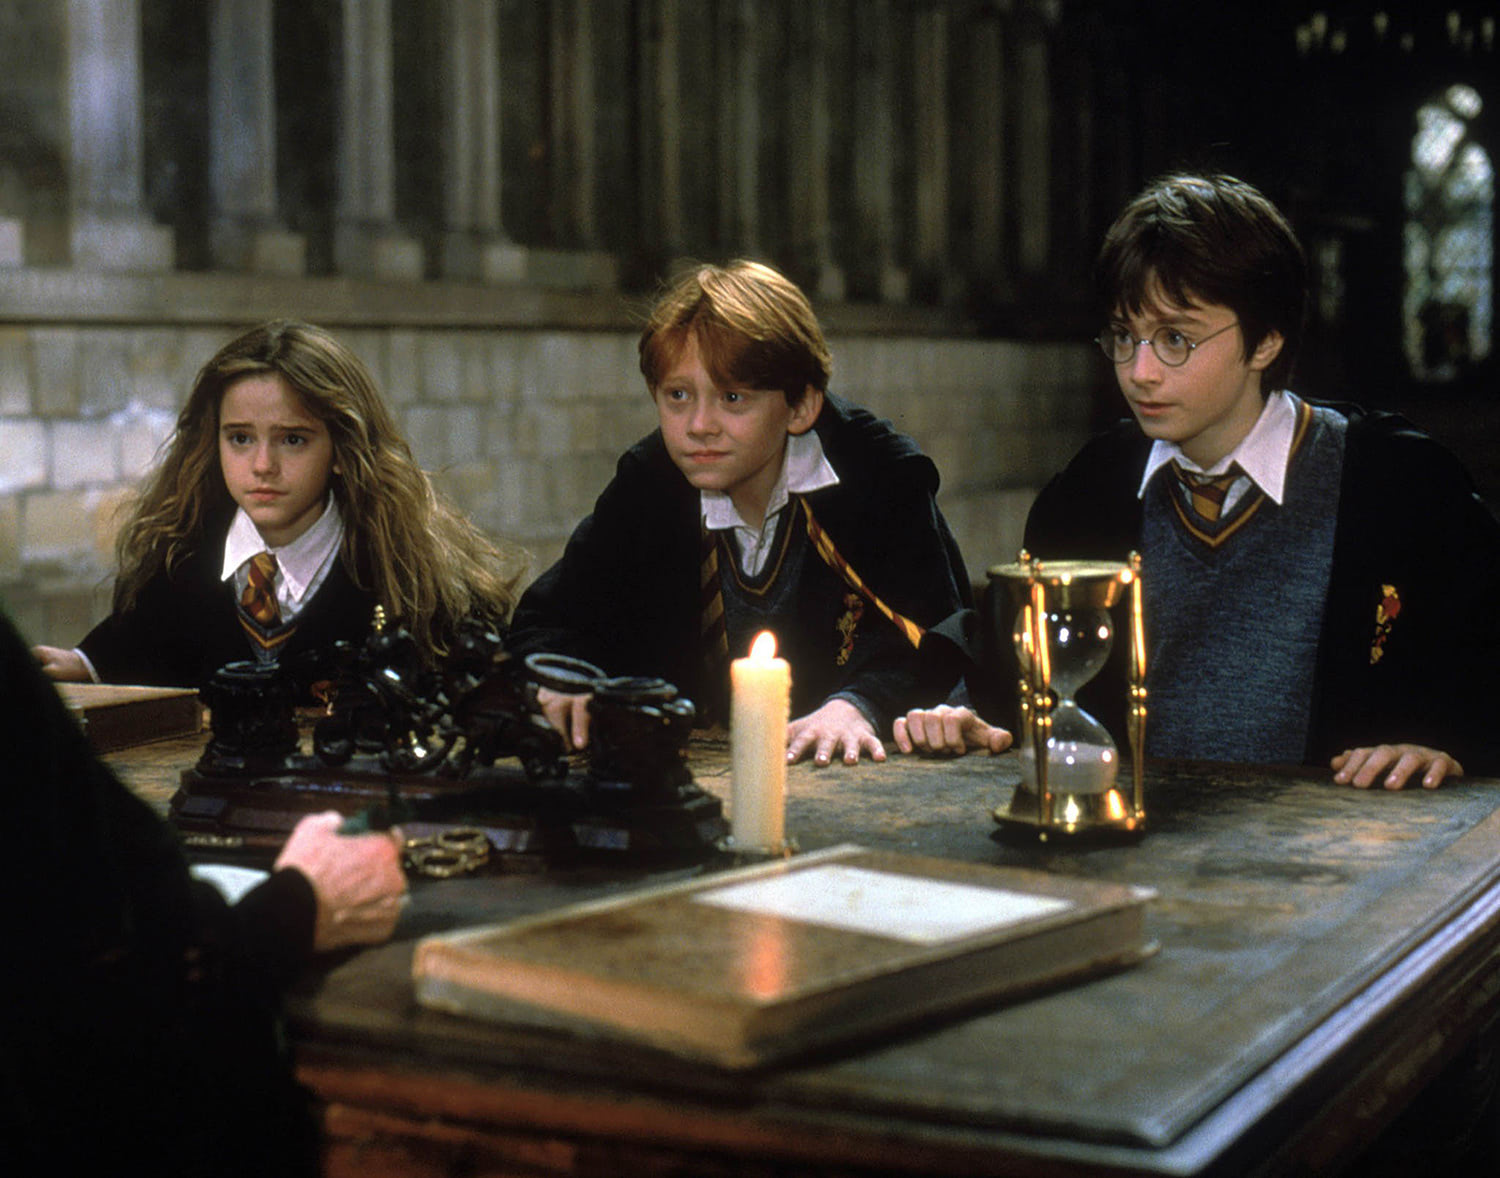 Hermione, Ron and Harry speak with Professor McGonagall